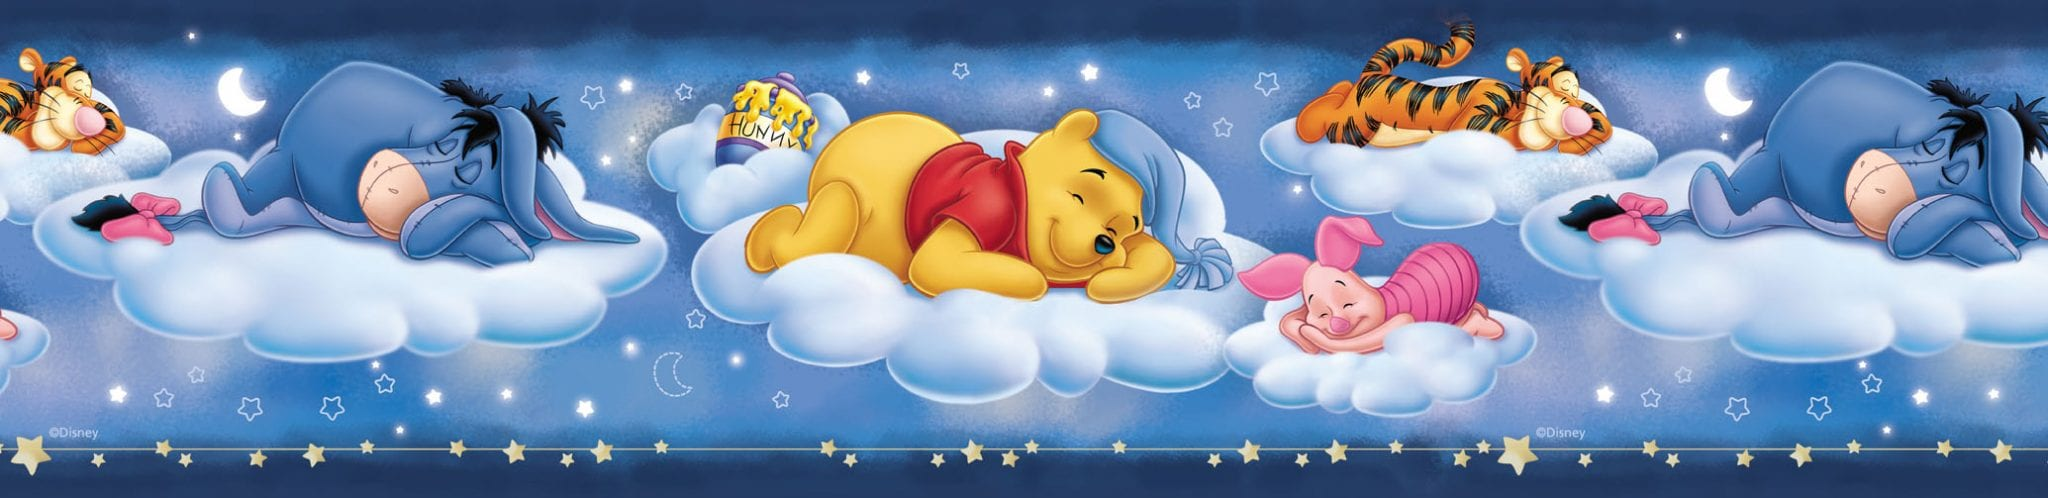 Guarda de papel infantil Pooh Disney 2580-1